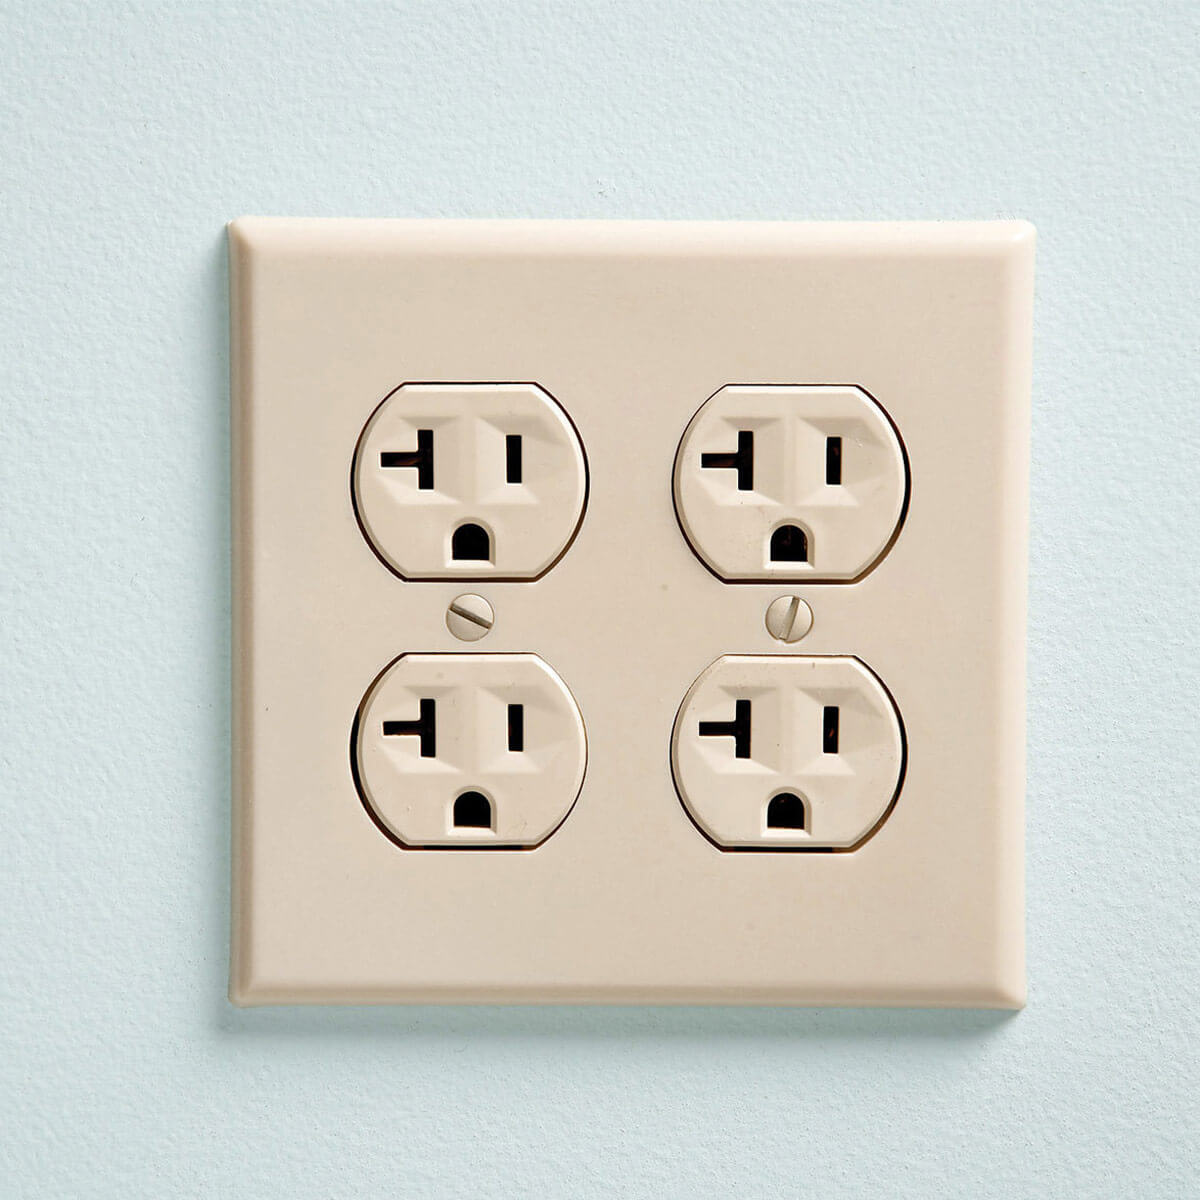 Which is the Correct (and Incorrect) Way to Install an Electrical Outlet?